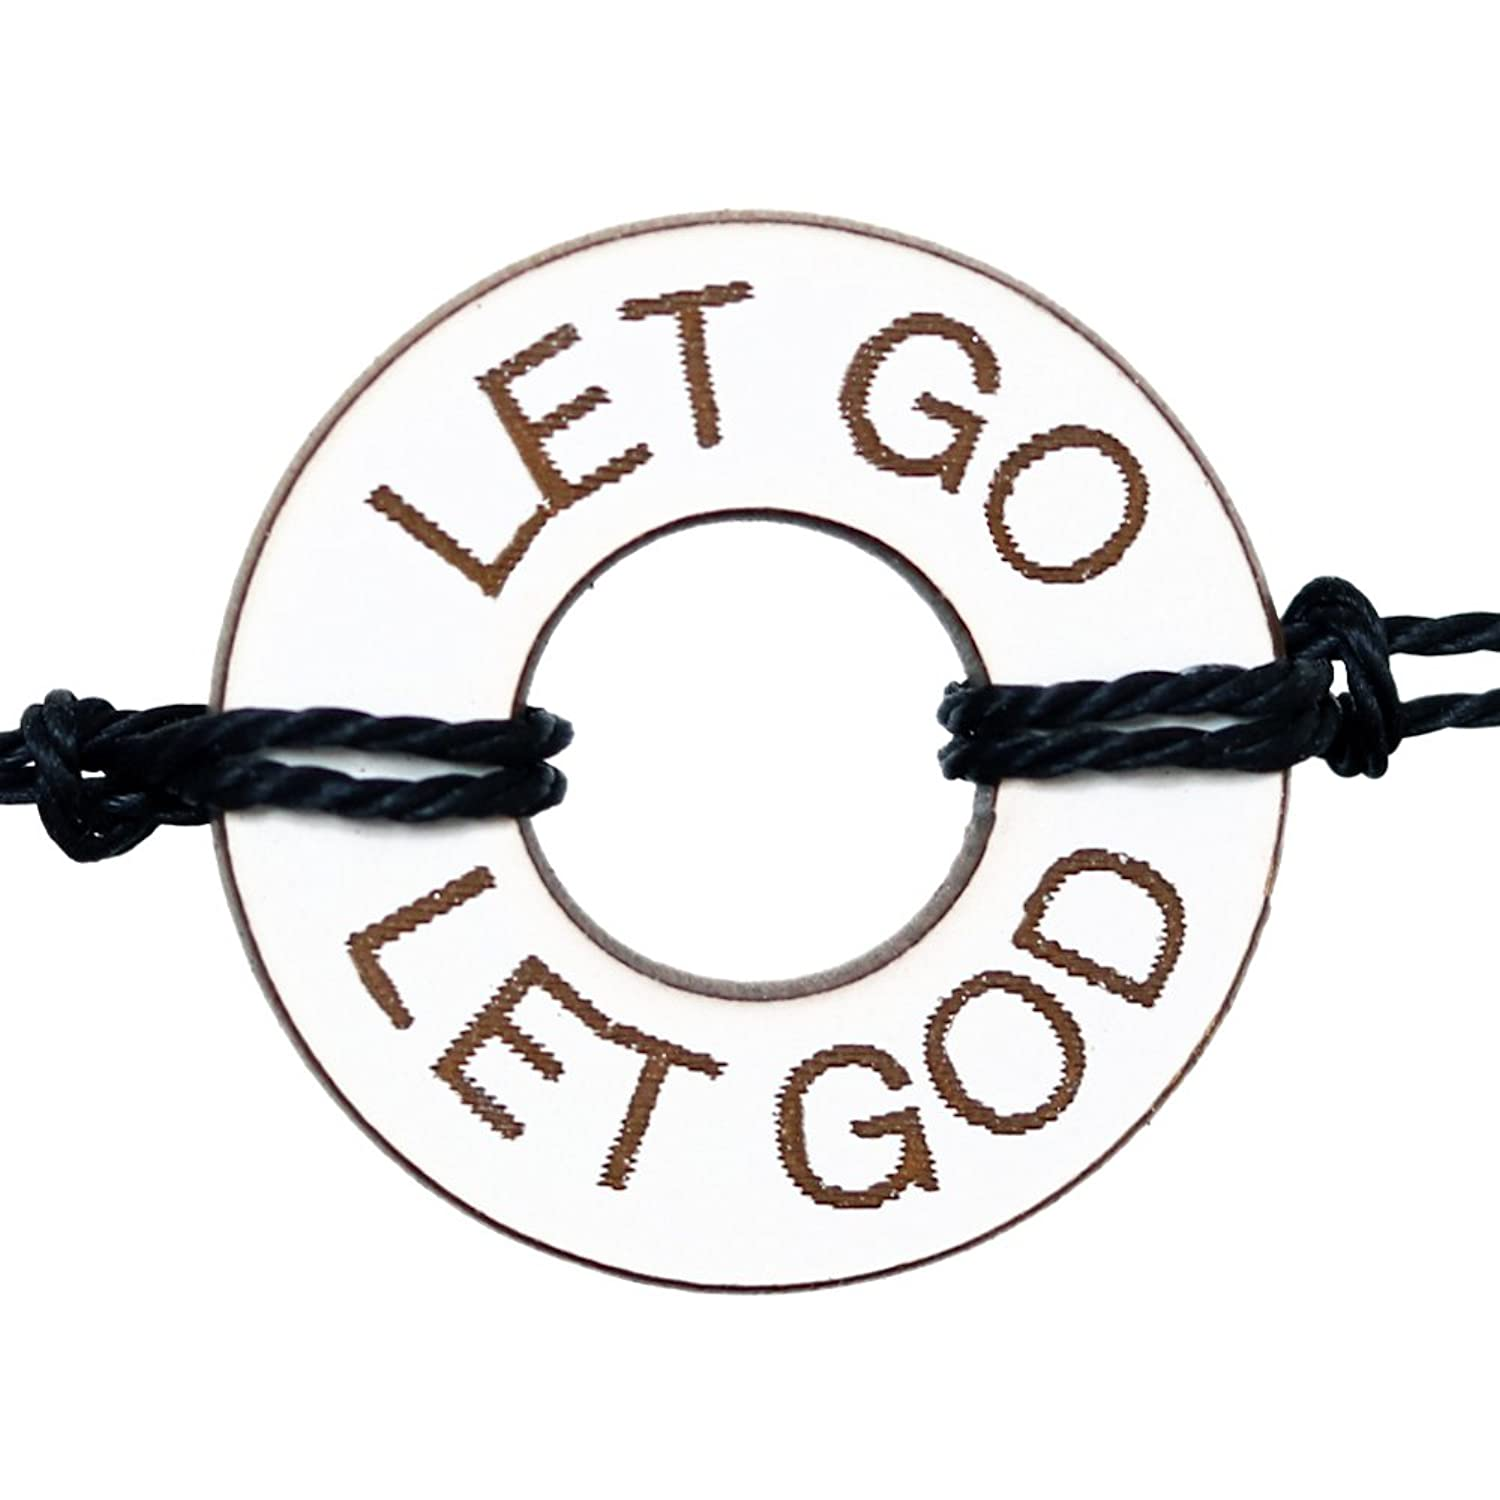 Life Token Handmade Custom Personalized Engraved Message Let Go Let God Novelty Jewelry Gift Bracelet For Both Men and Women (White wth Gold Engraving)